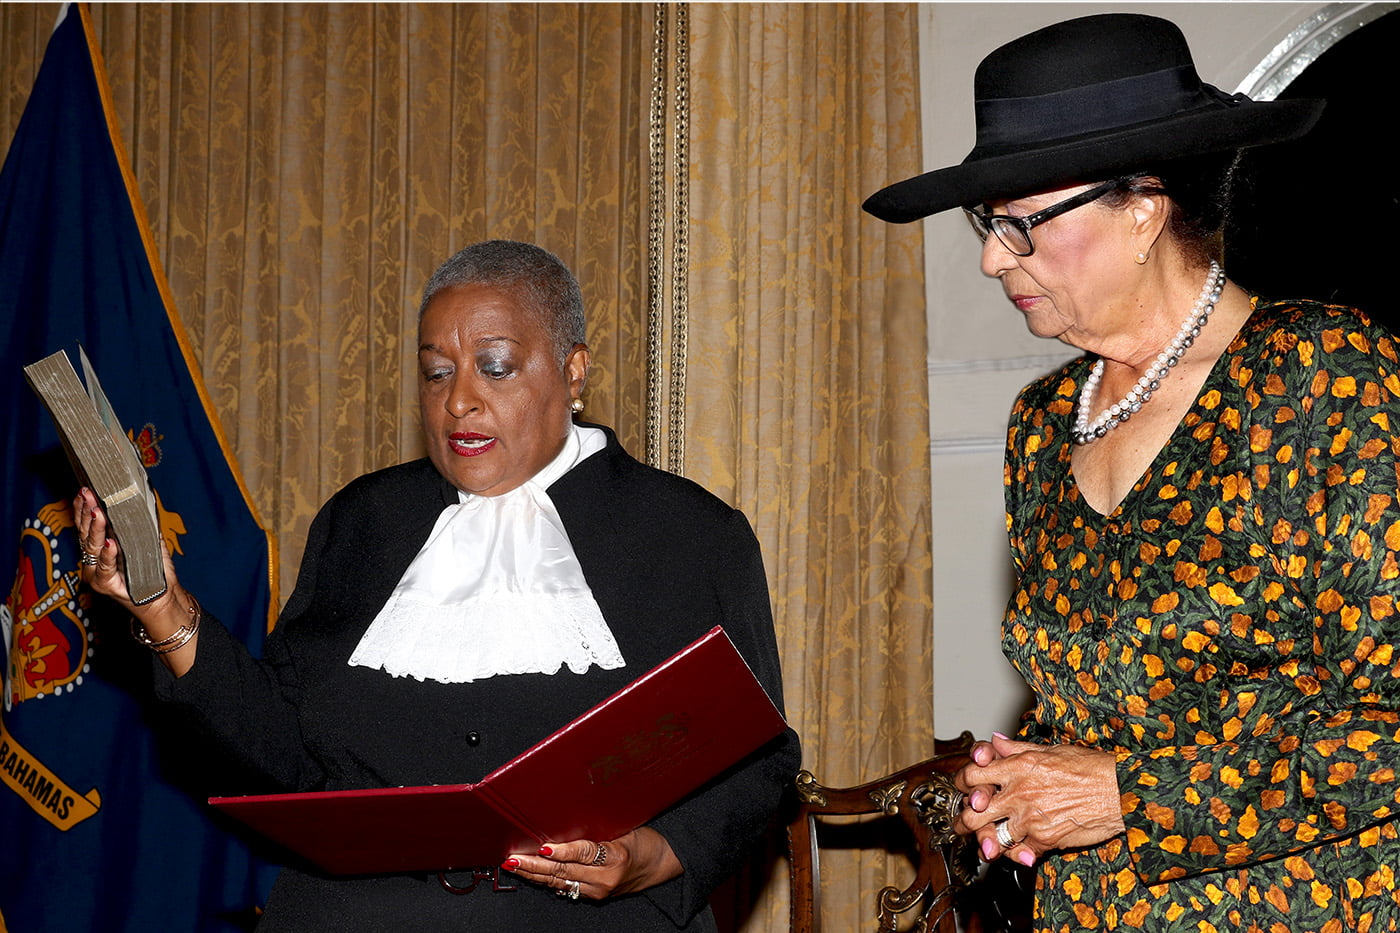 Ruth Bowe-Darville Sworn in as Justice of the Supreme Court